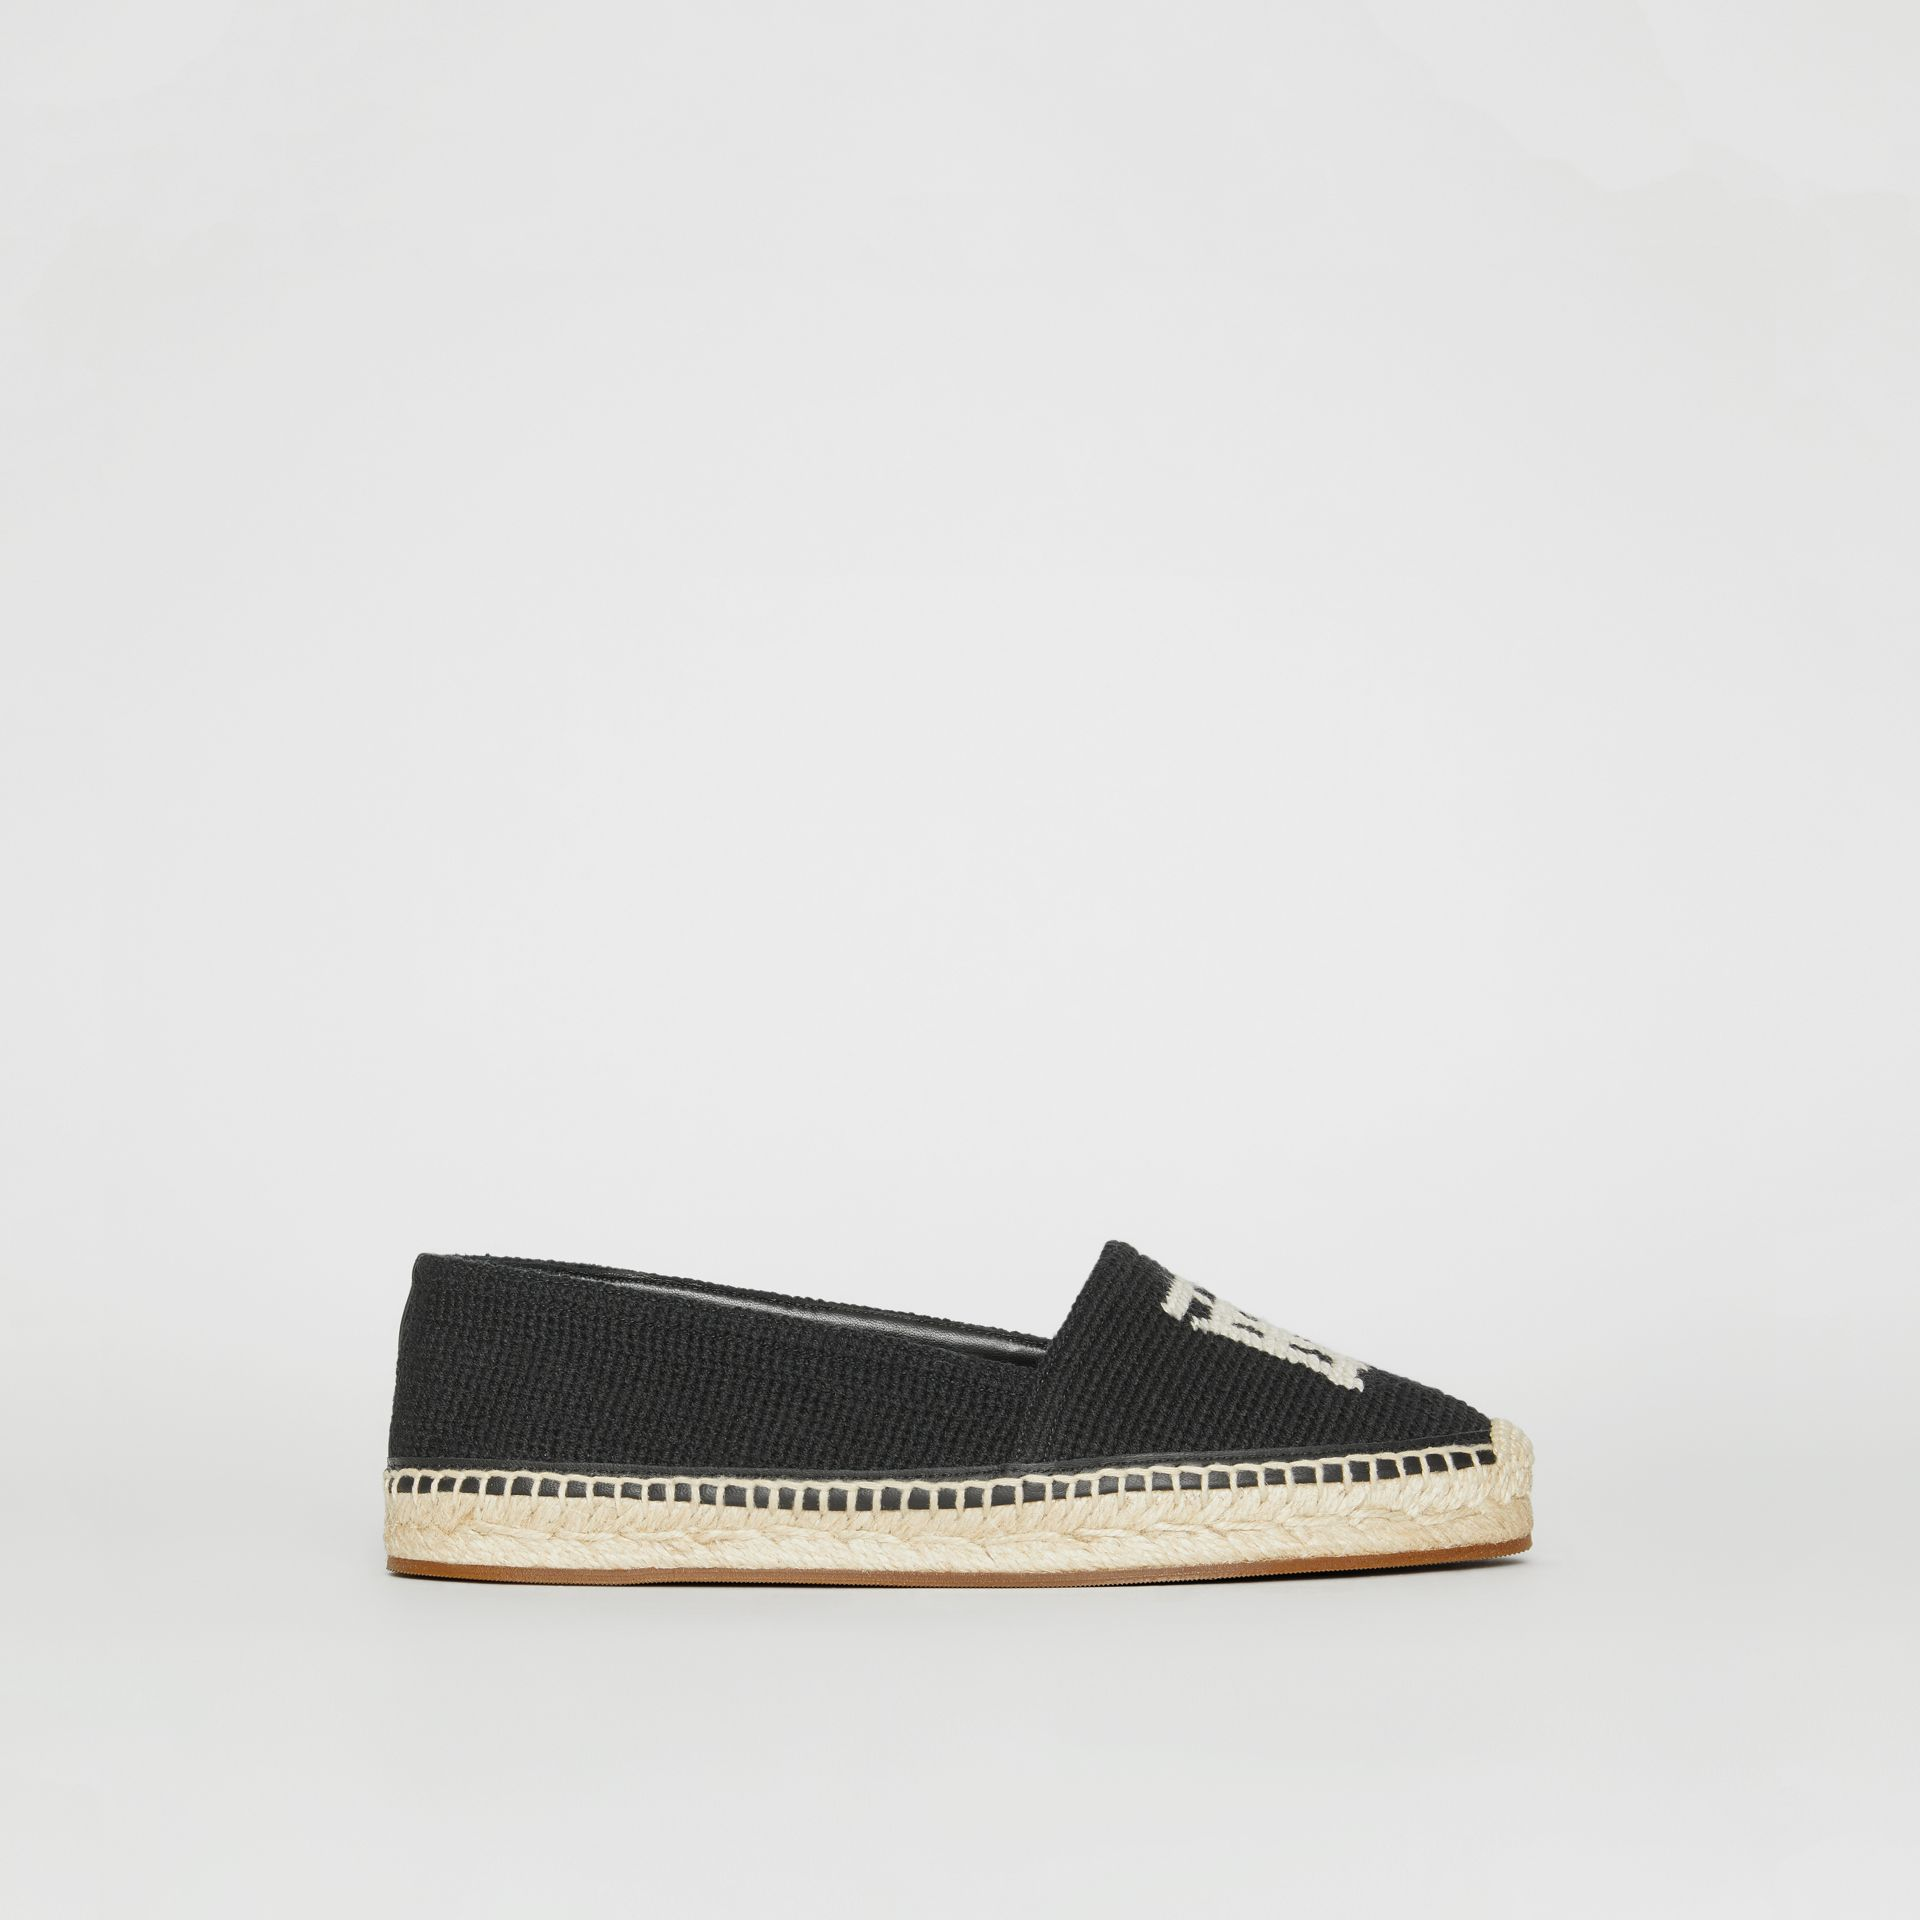 Monogram Motif Cotton and Leather Espadrilles in Black/ecru - Women | Burberry - gallery image 4